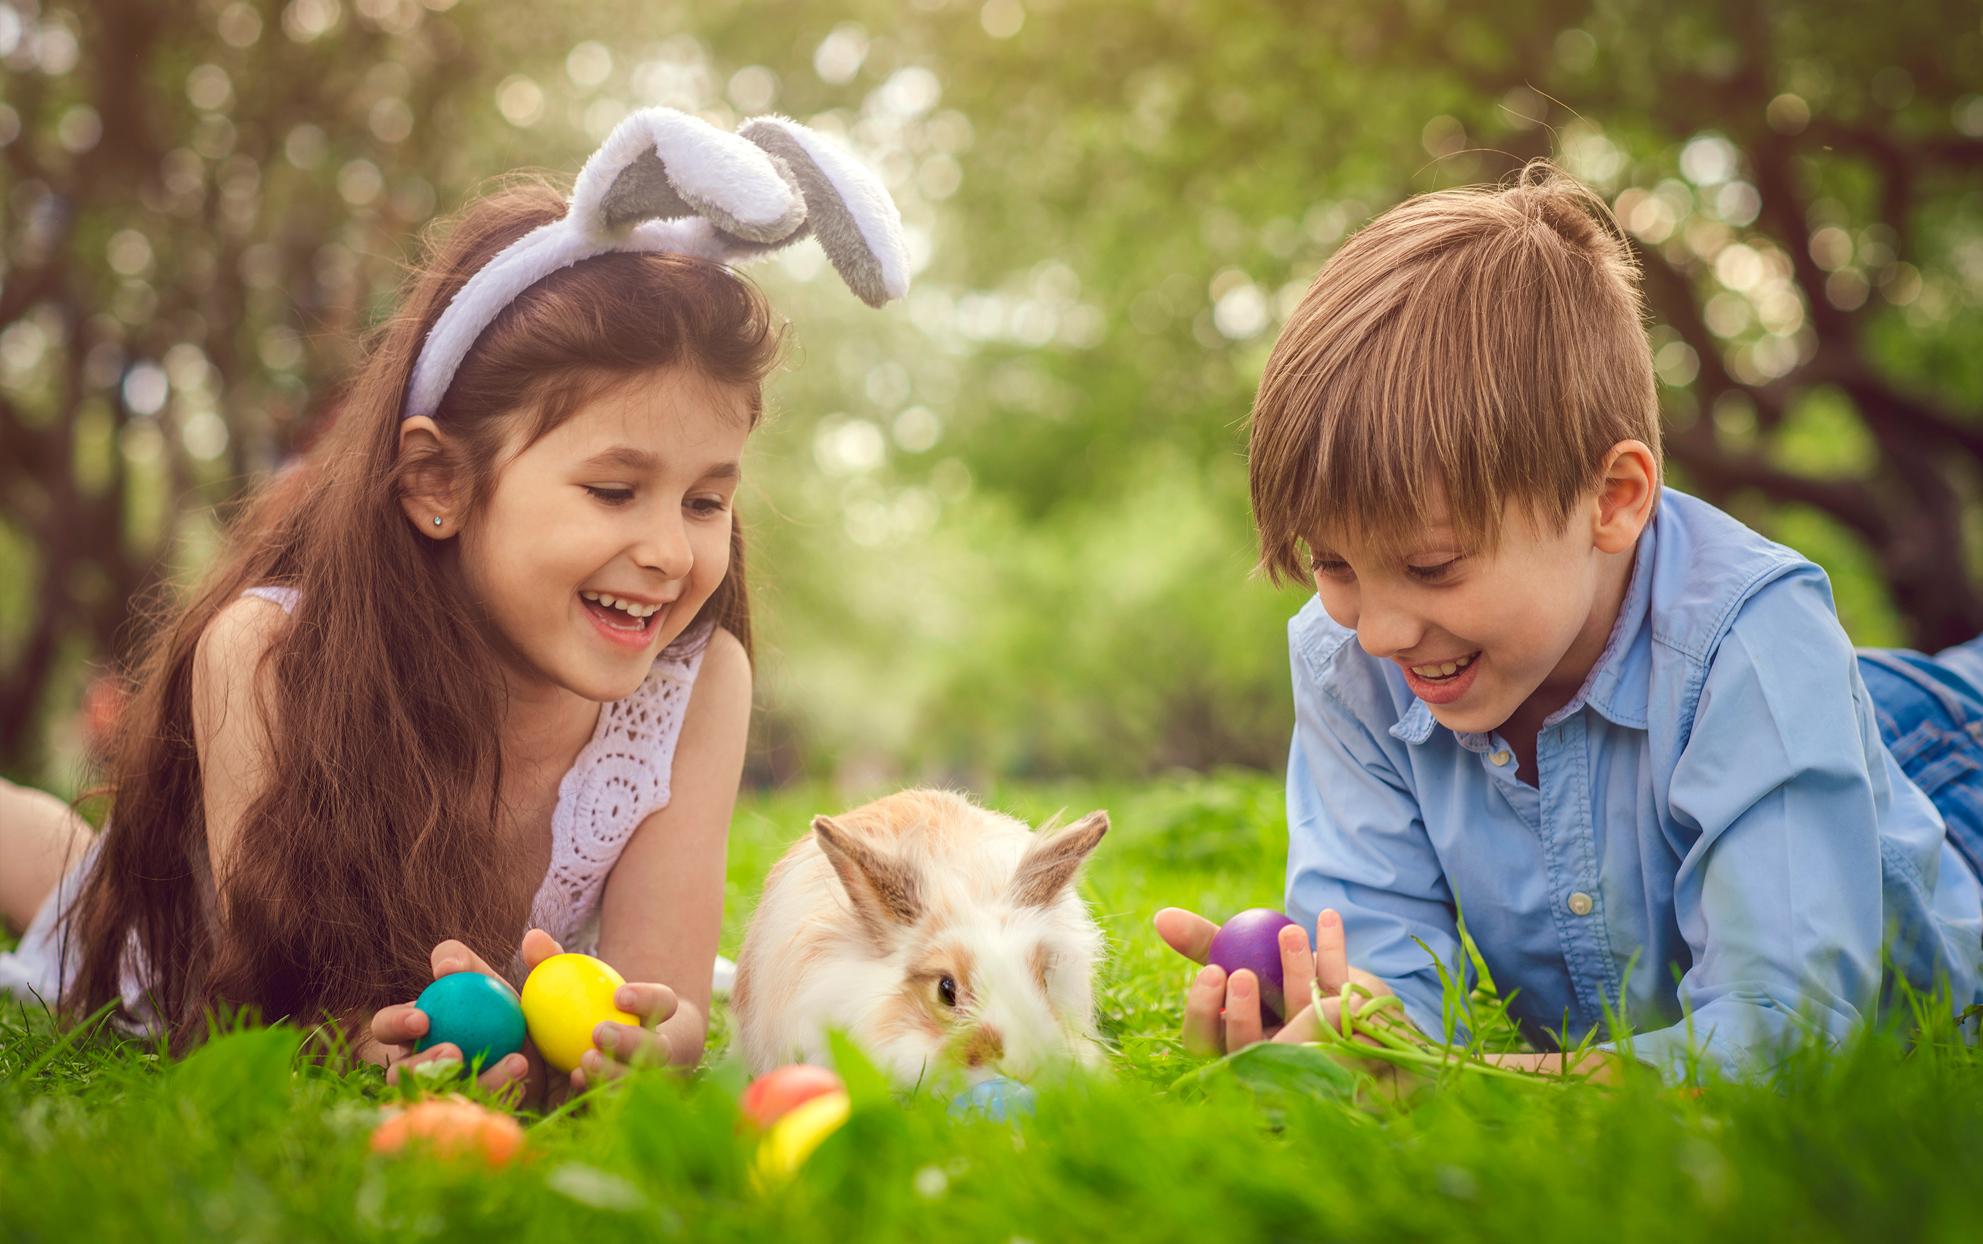 Two kids playing in the grass with an Easter bunny